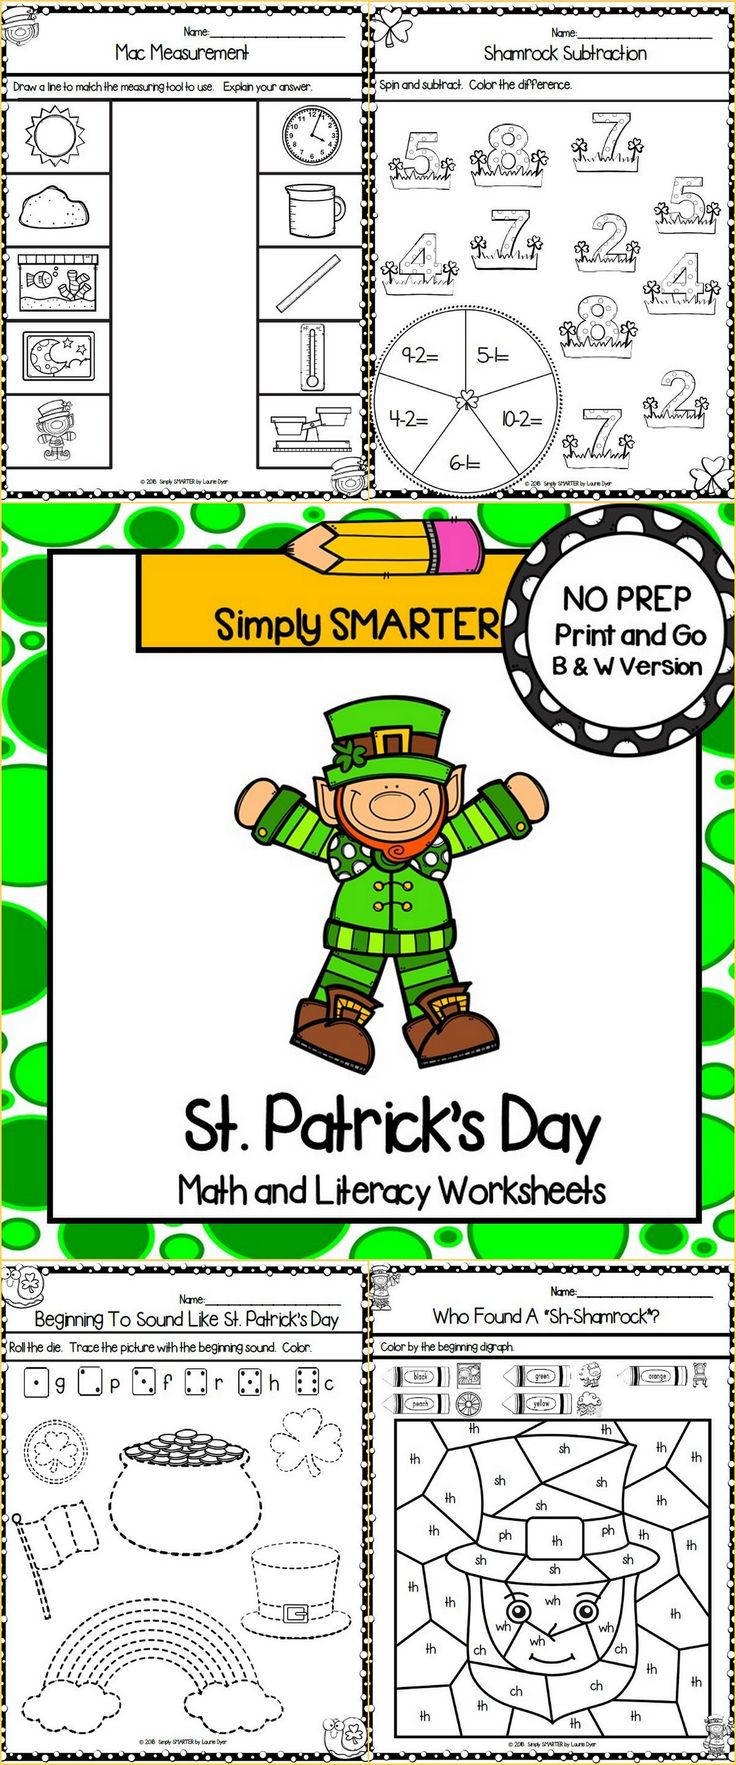 Are you looking for NO PREP math and literacy activities? Then enjoy this math and literacy resource which is comprised of FORTY ST. PATRICK'S DAY themed WORKSHEETS. The worksheets can be used for guided math, math centers, word work, literacy centers, early finishers, enrichment, remediation, independent work, morning work, focus lessons, and homework. ALL YOU NEED TO DO IS AND PROVIDE PENCILS, CRAYONS, CLIPS, AND DICE.